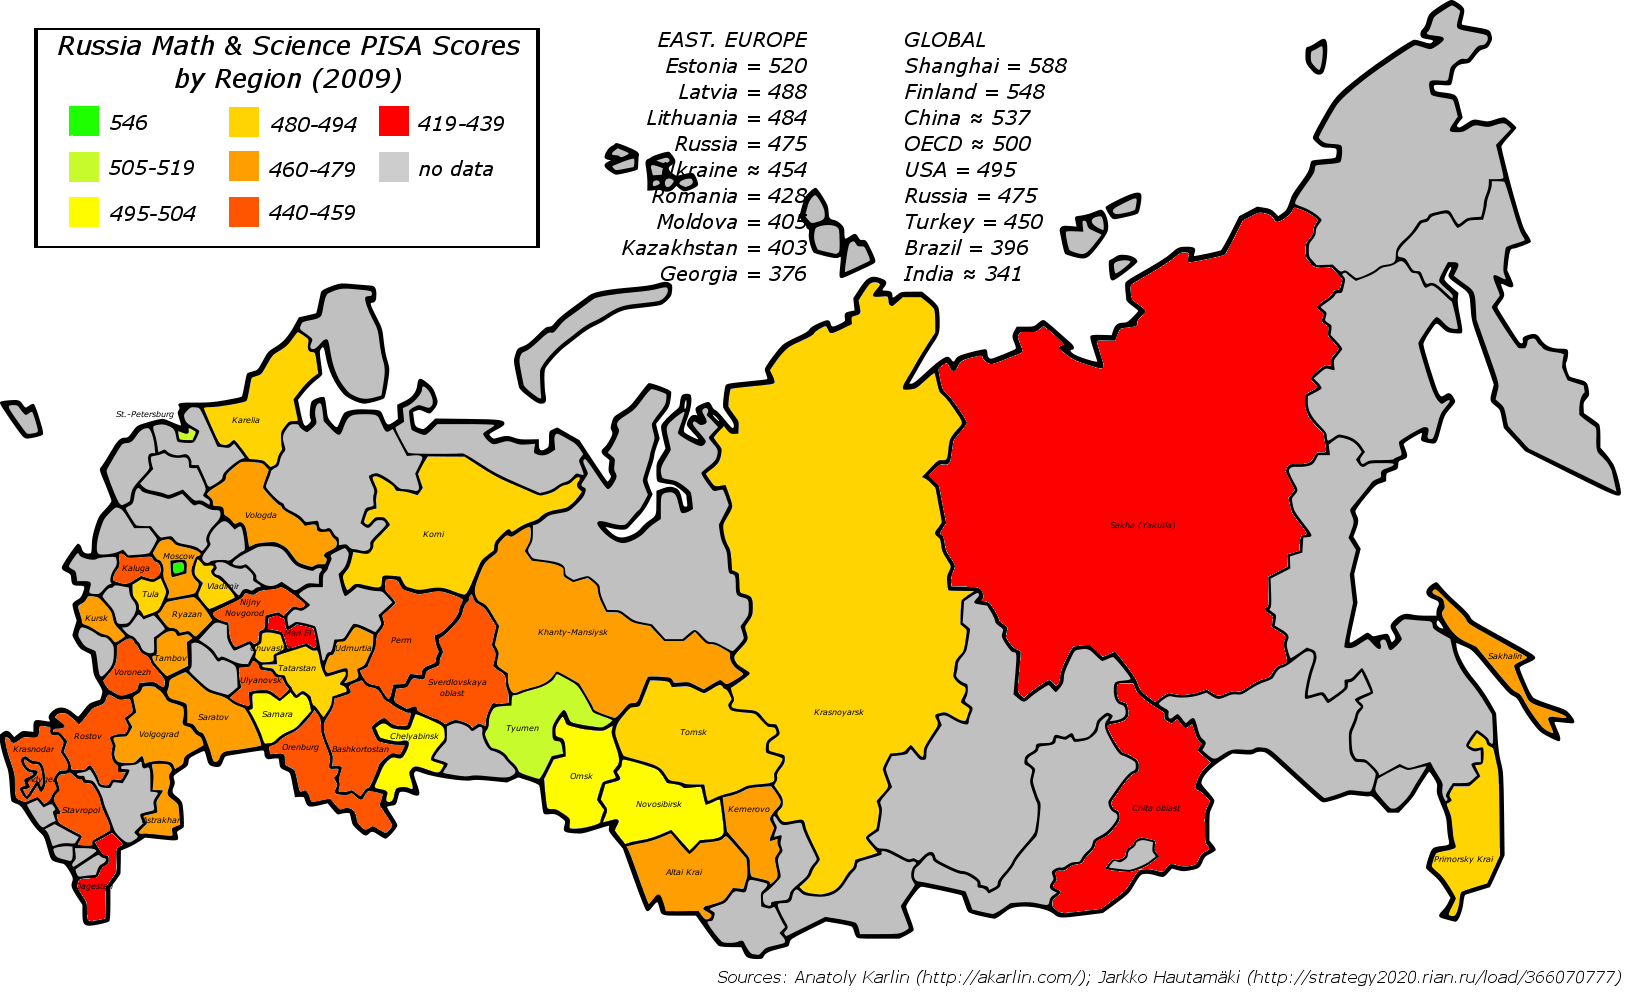 Analysis Of Russias PISA 2009 Results